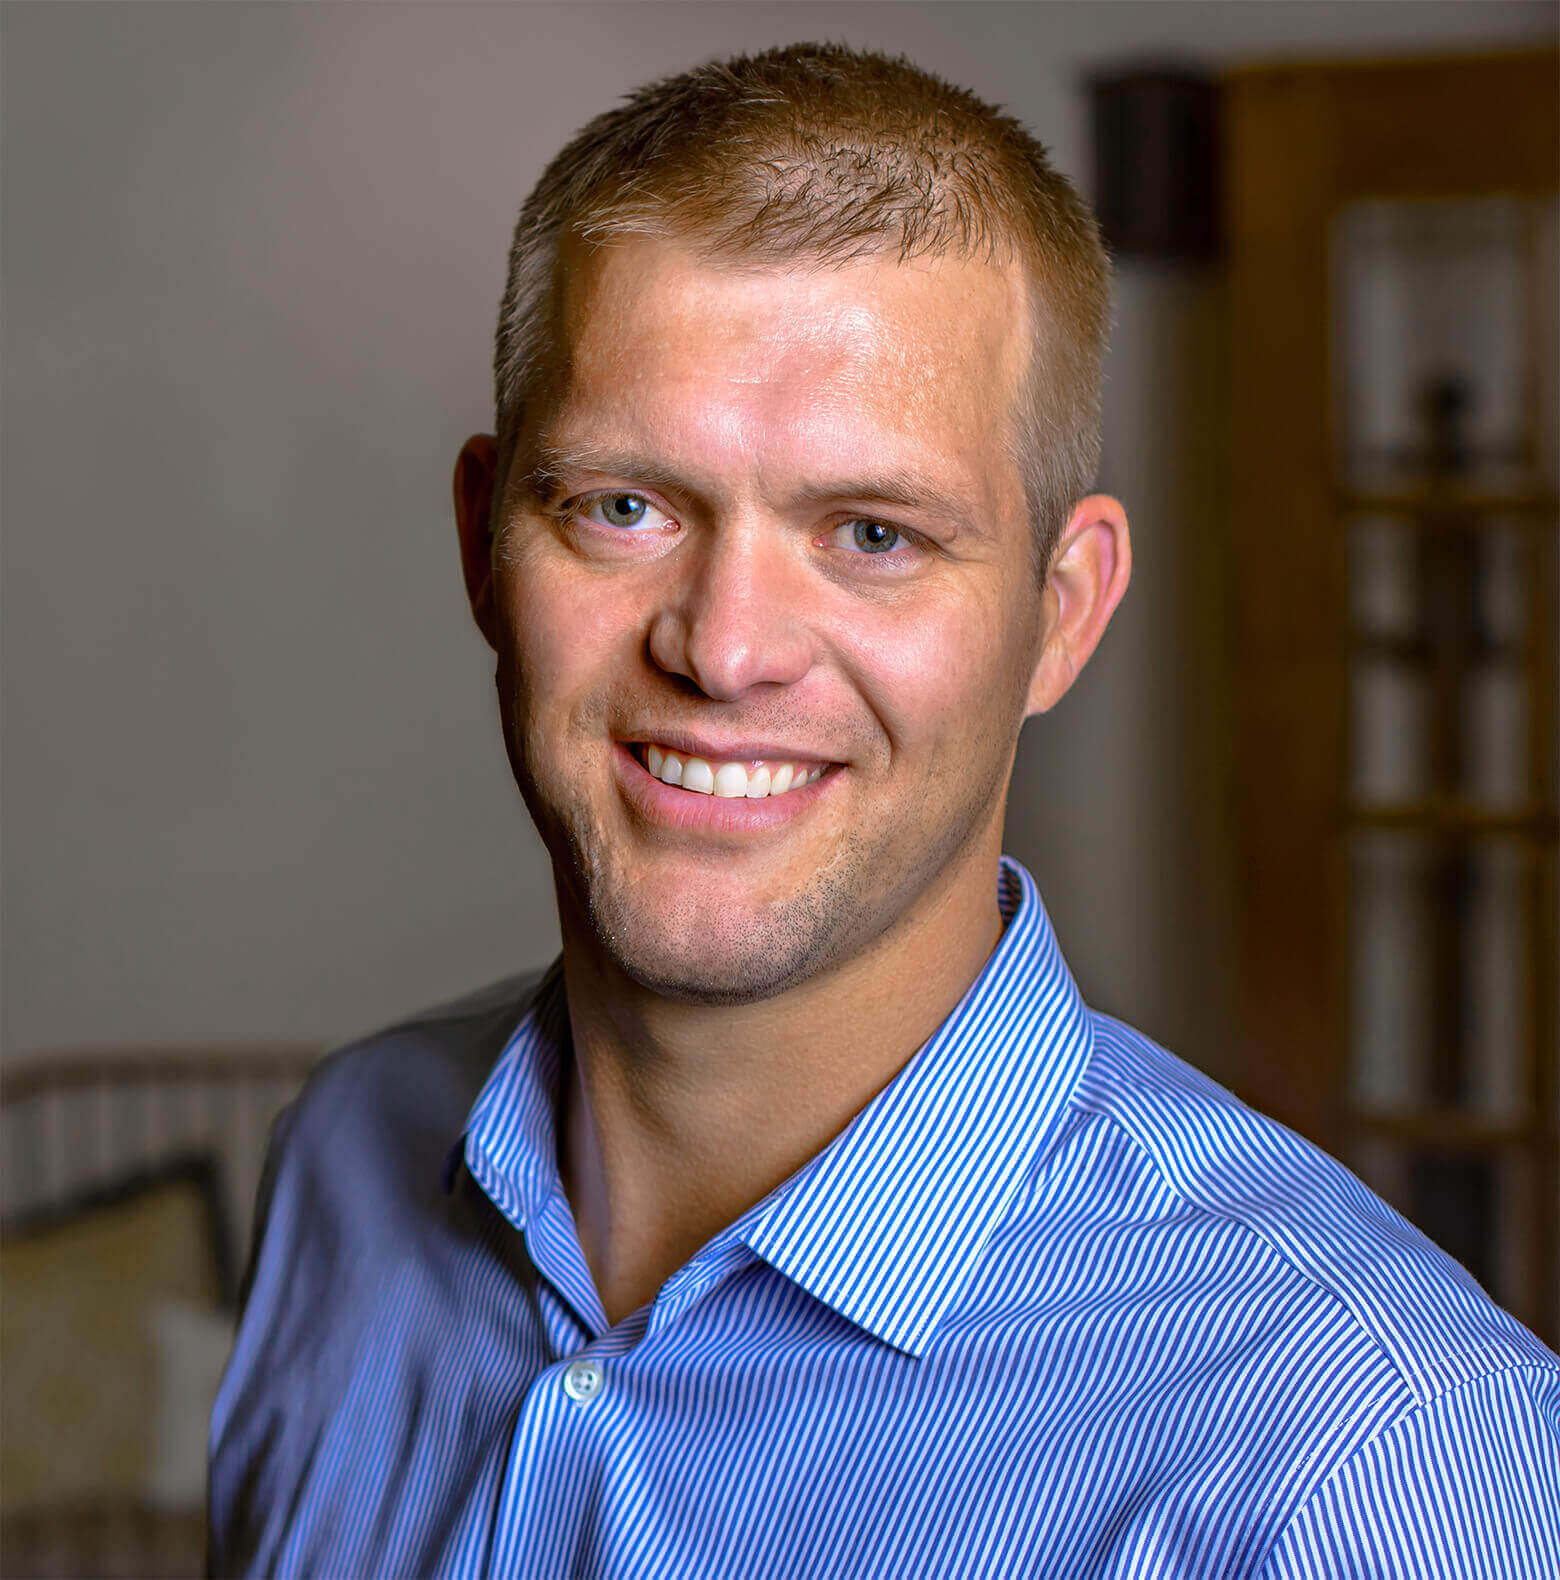 Dr. Tanner Hunsaker at Midtown Dental in Logan, Utah